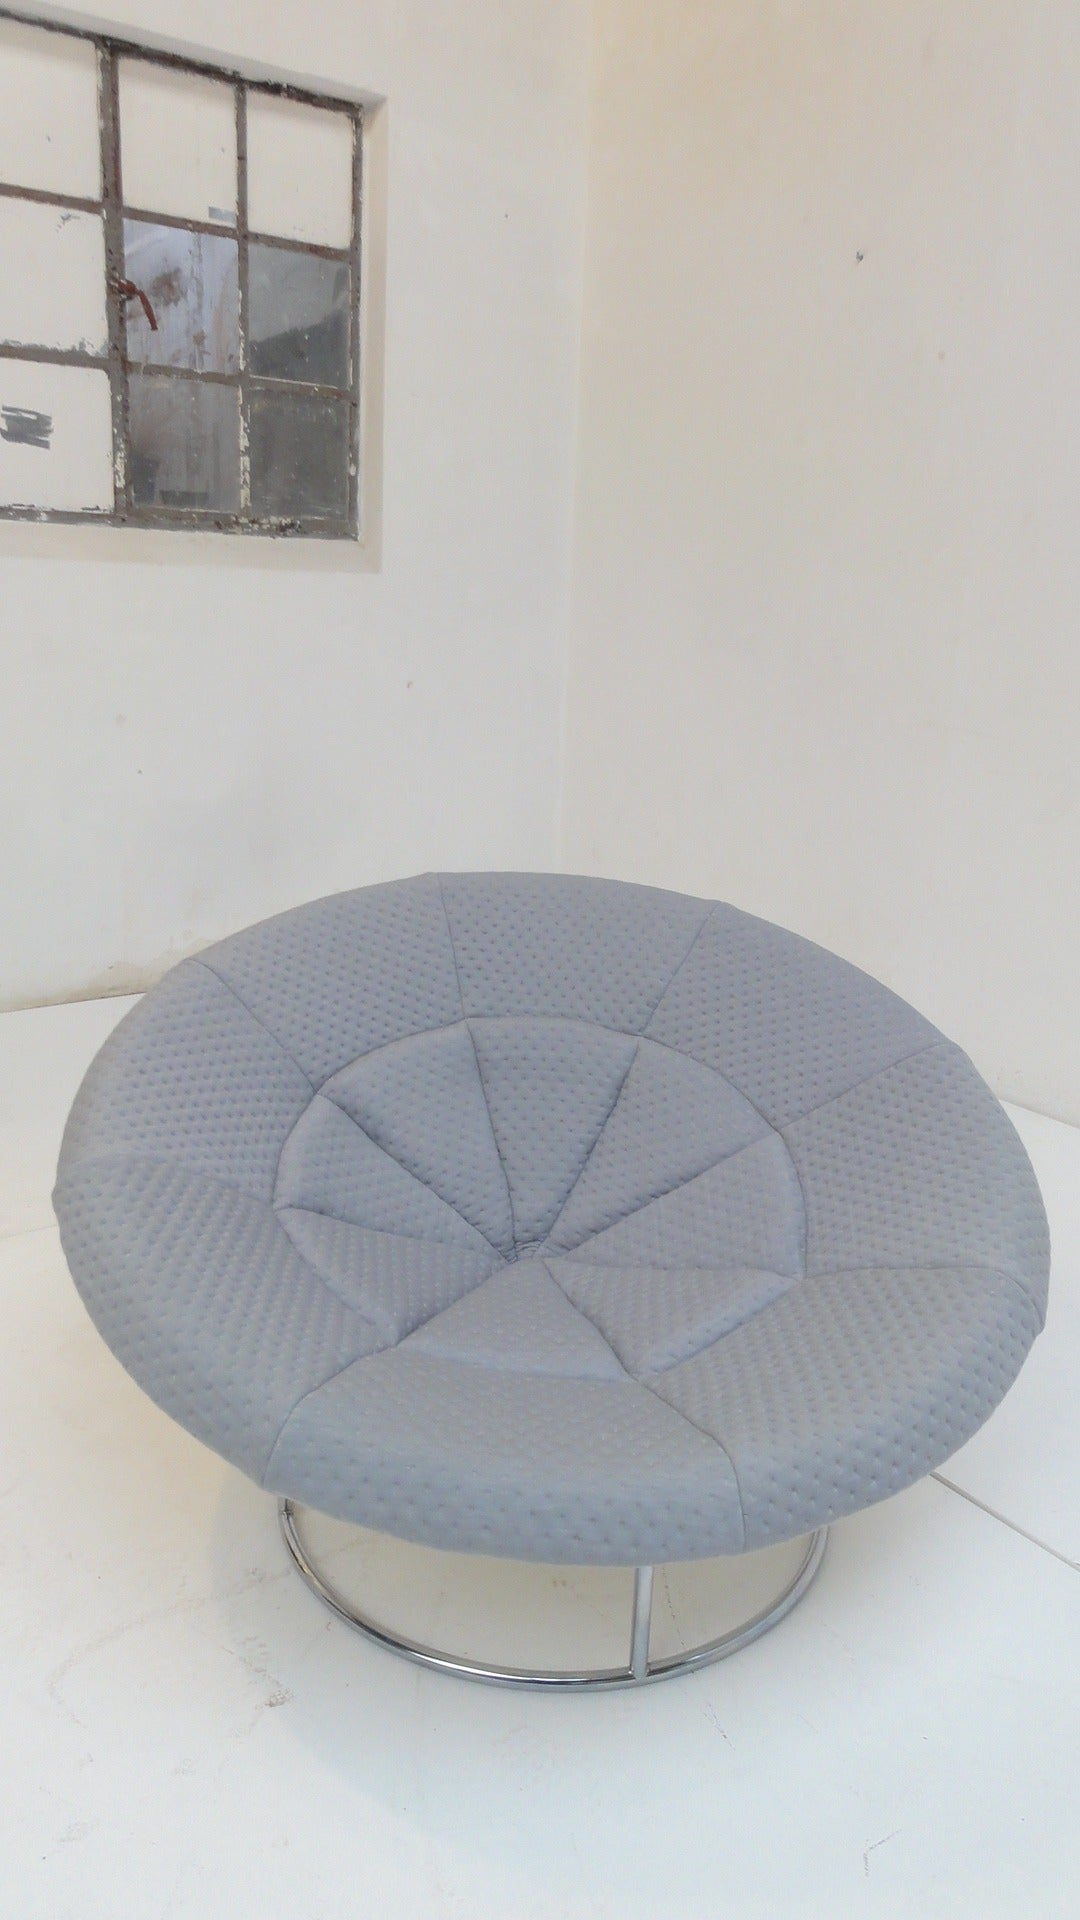 birds nest chair metal chaise lounge chairs 1970s 39bird 39s 39 verner panton style for